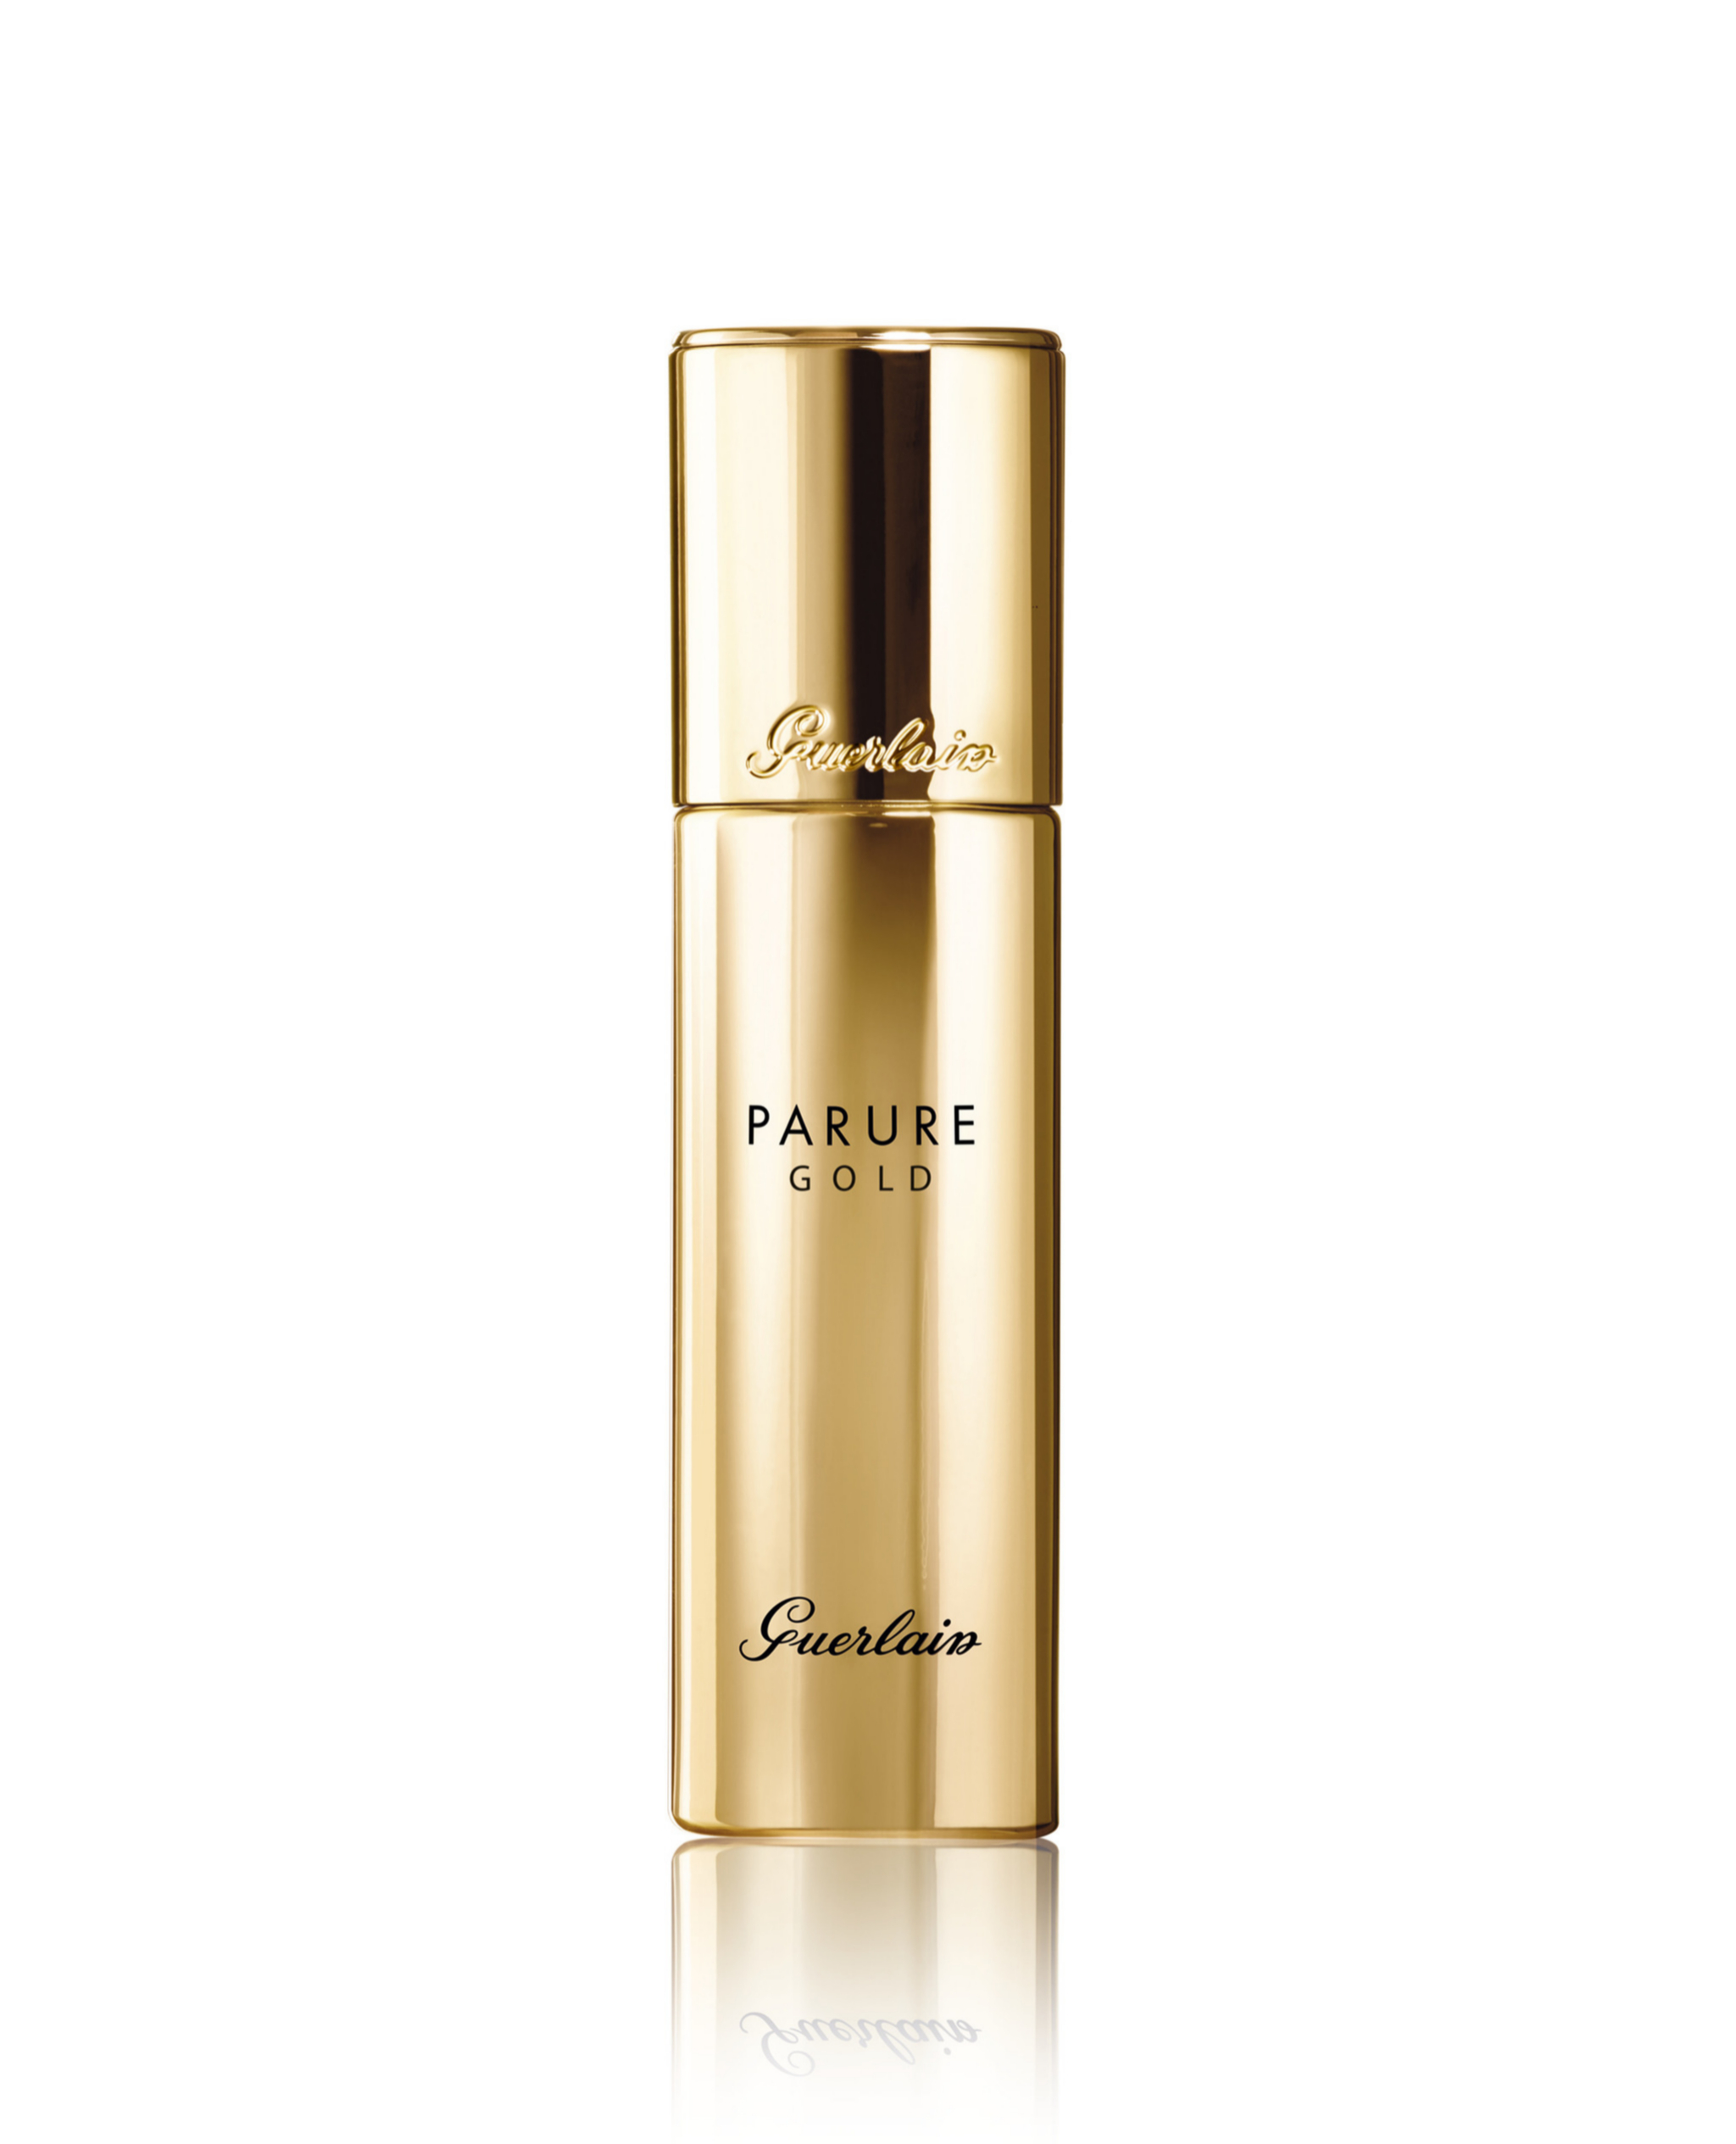 Parure Gold Radiance Foundation, 85,80 euros.